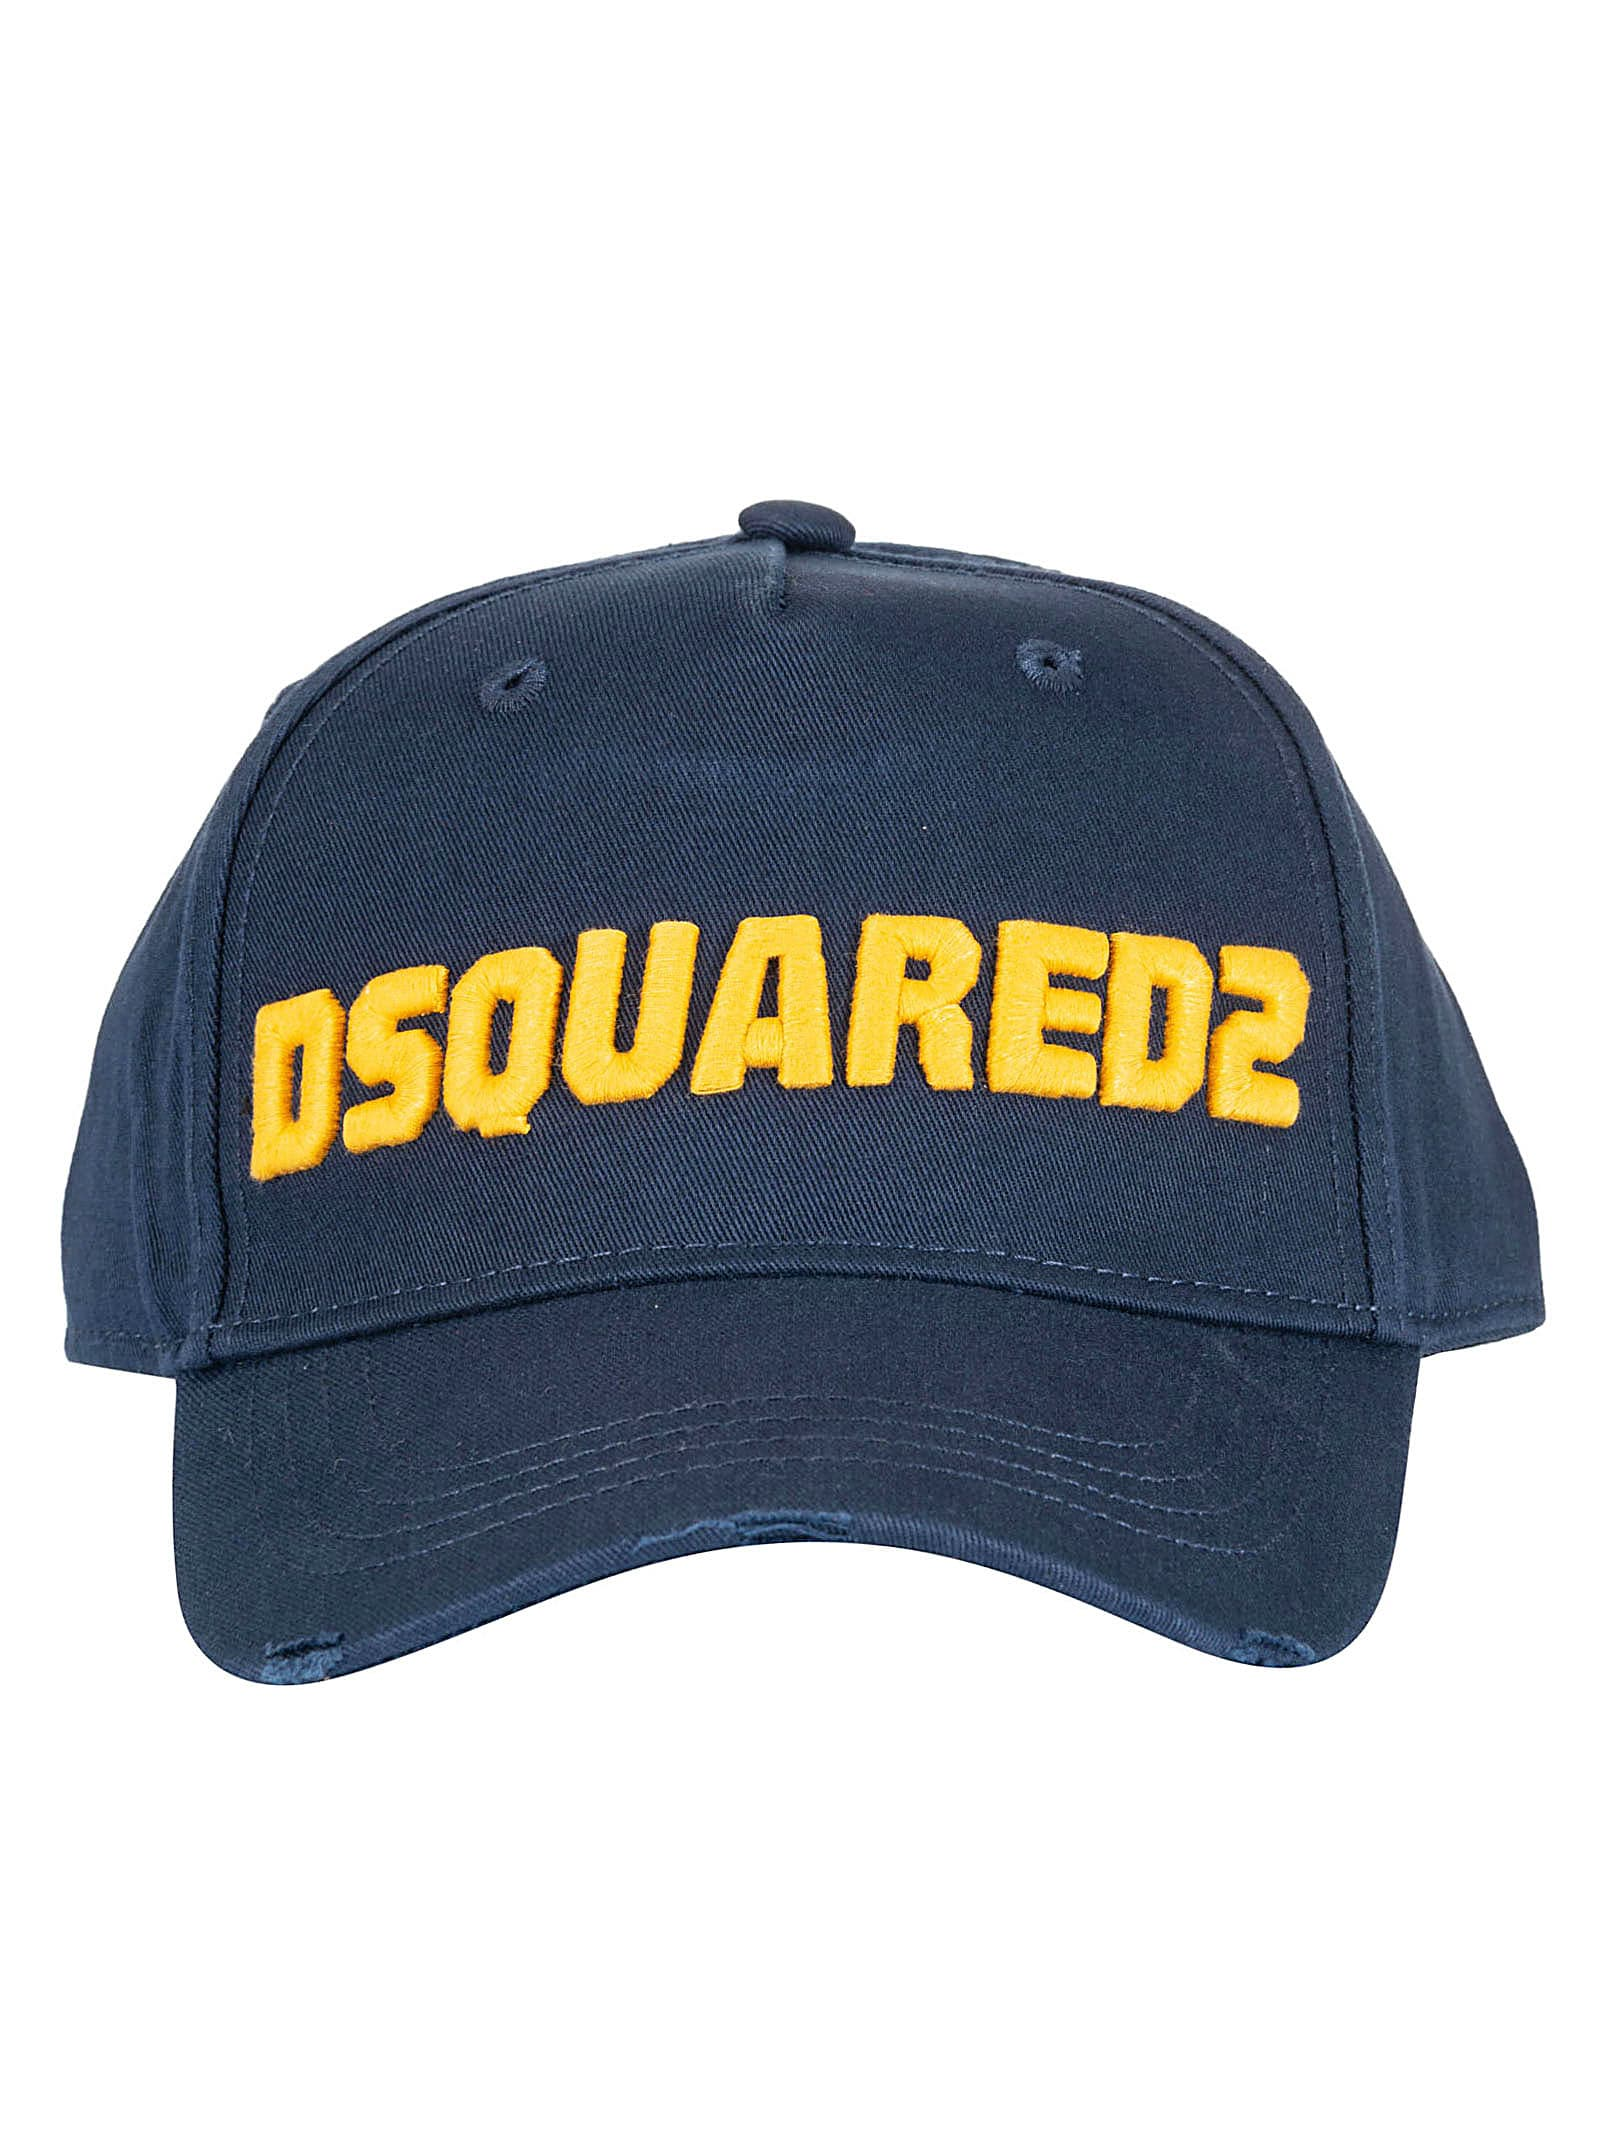 095e88838 Dsquared2 Embroidered Logo Baseball Cap